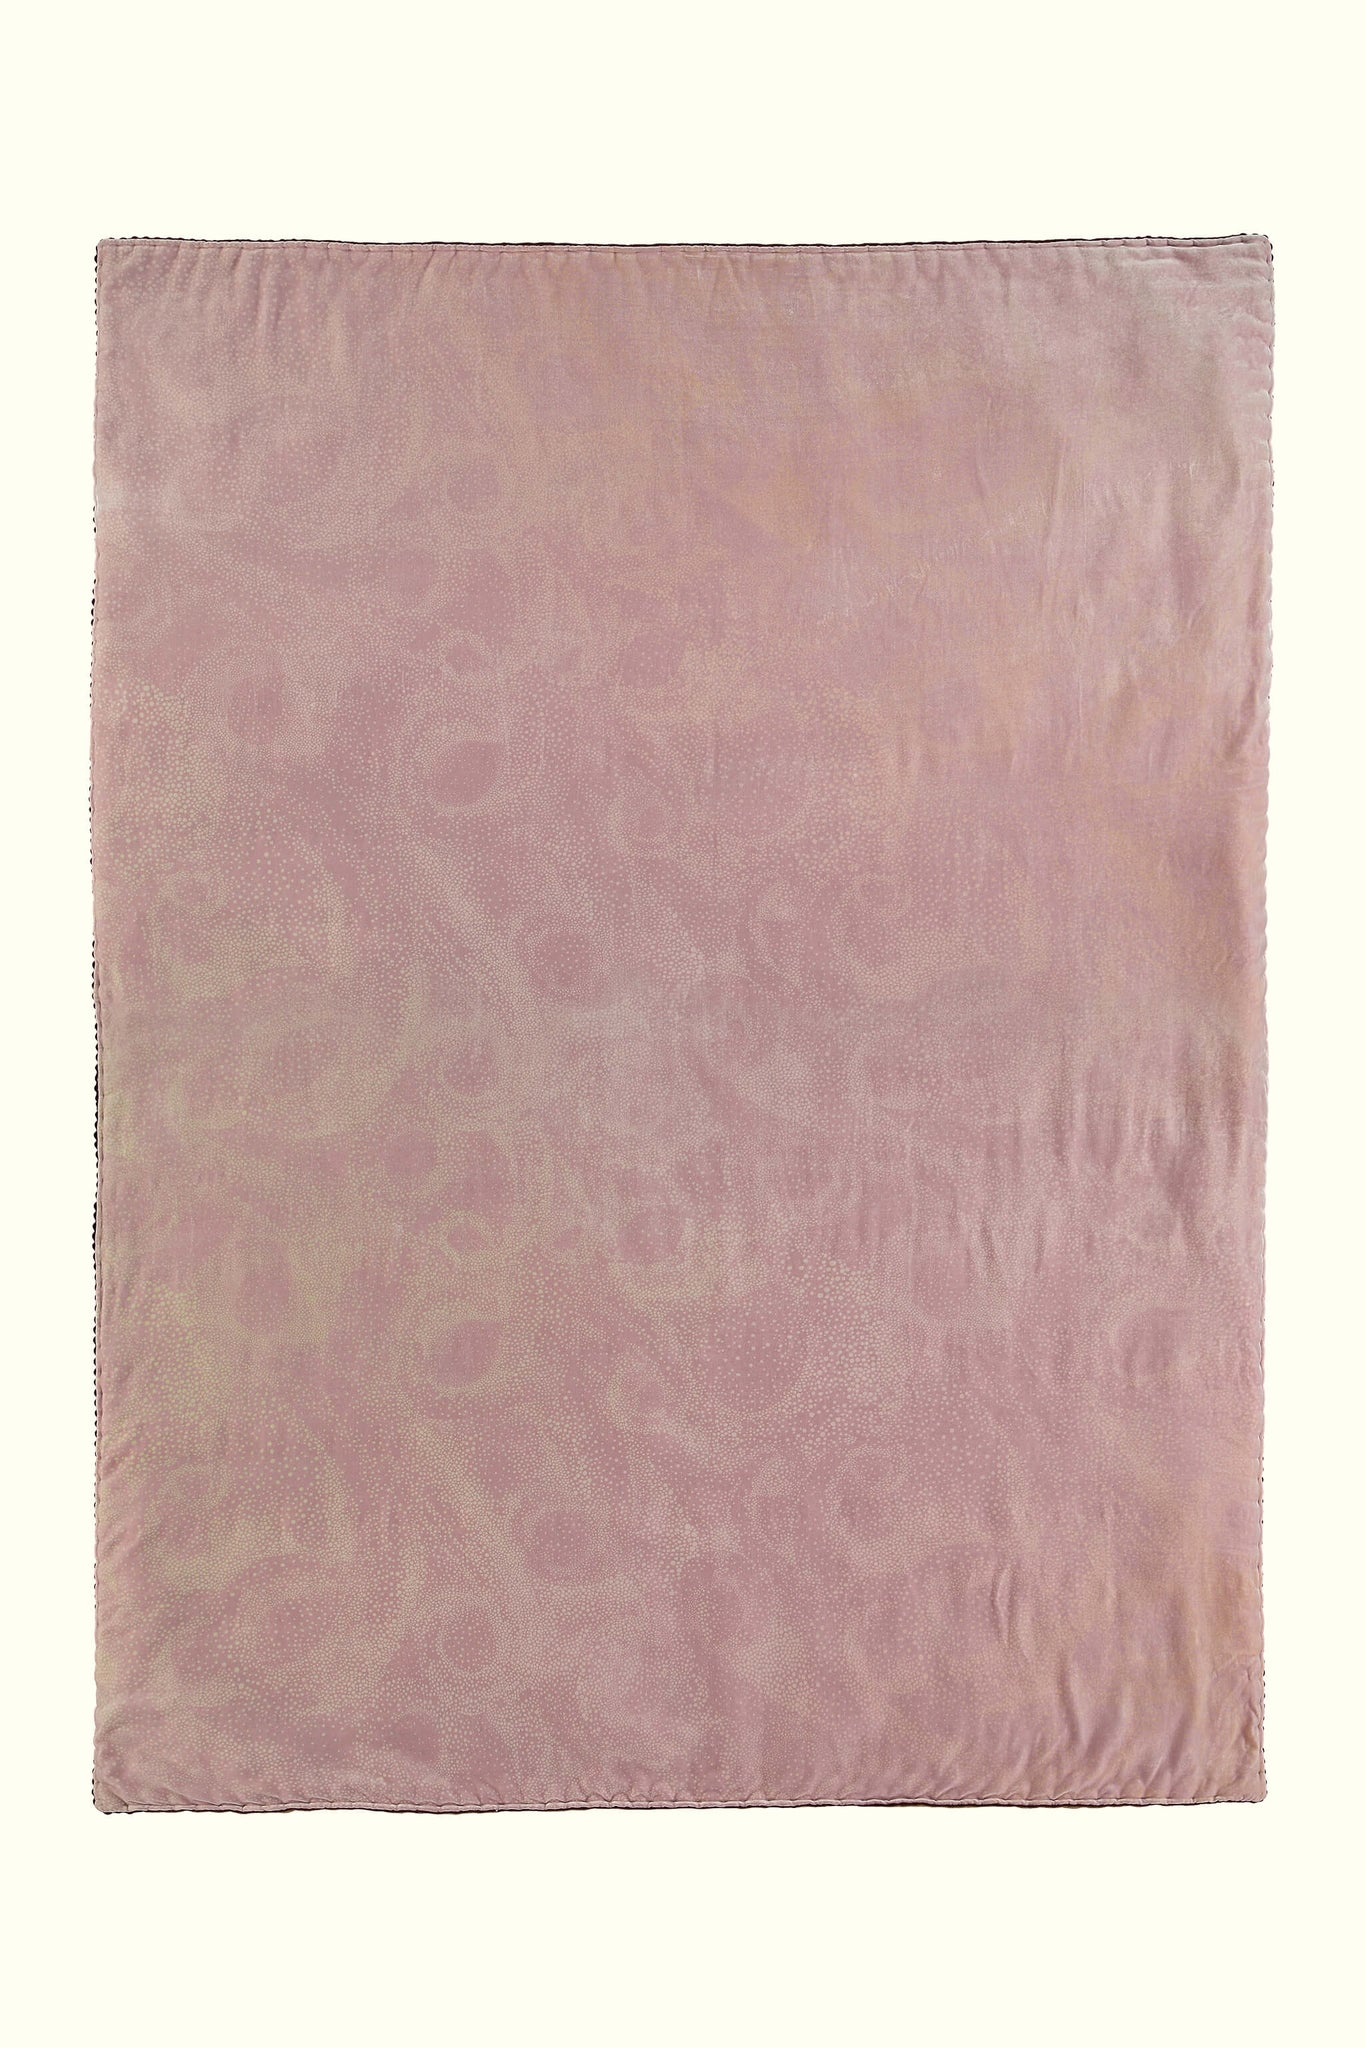 A luxury British silk velvet bed throw by GVE in dusty pink Aurora print design.